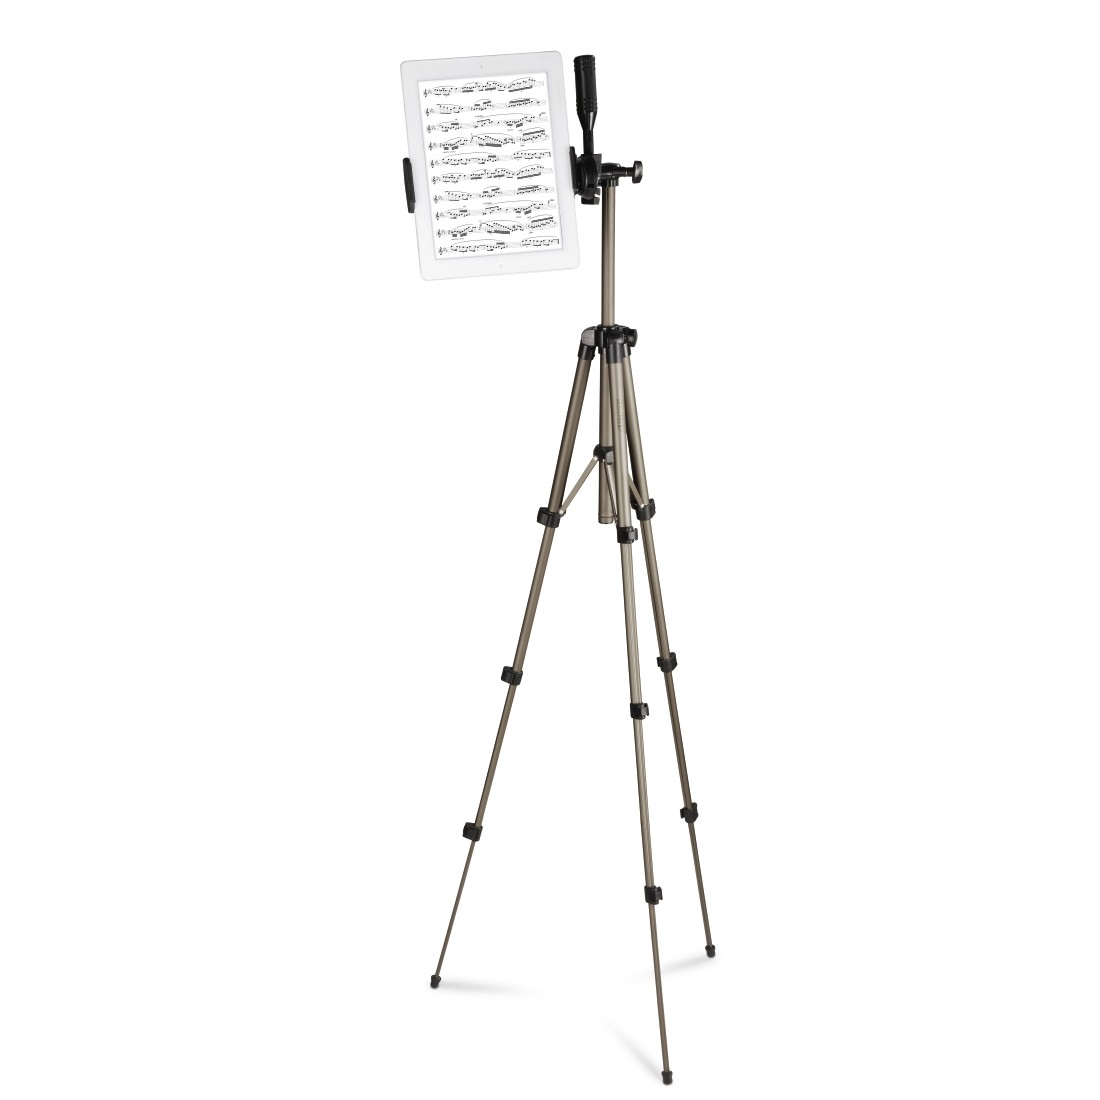 awx High-Res Appliance - Hama, Tripod for Smartphone/Tablet, 106 - 3D